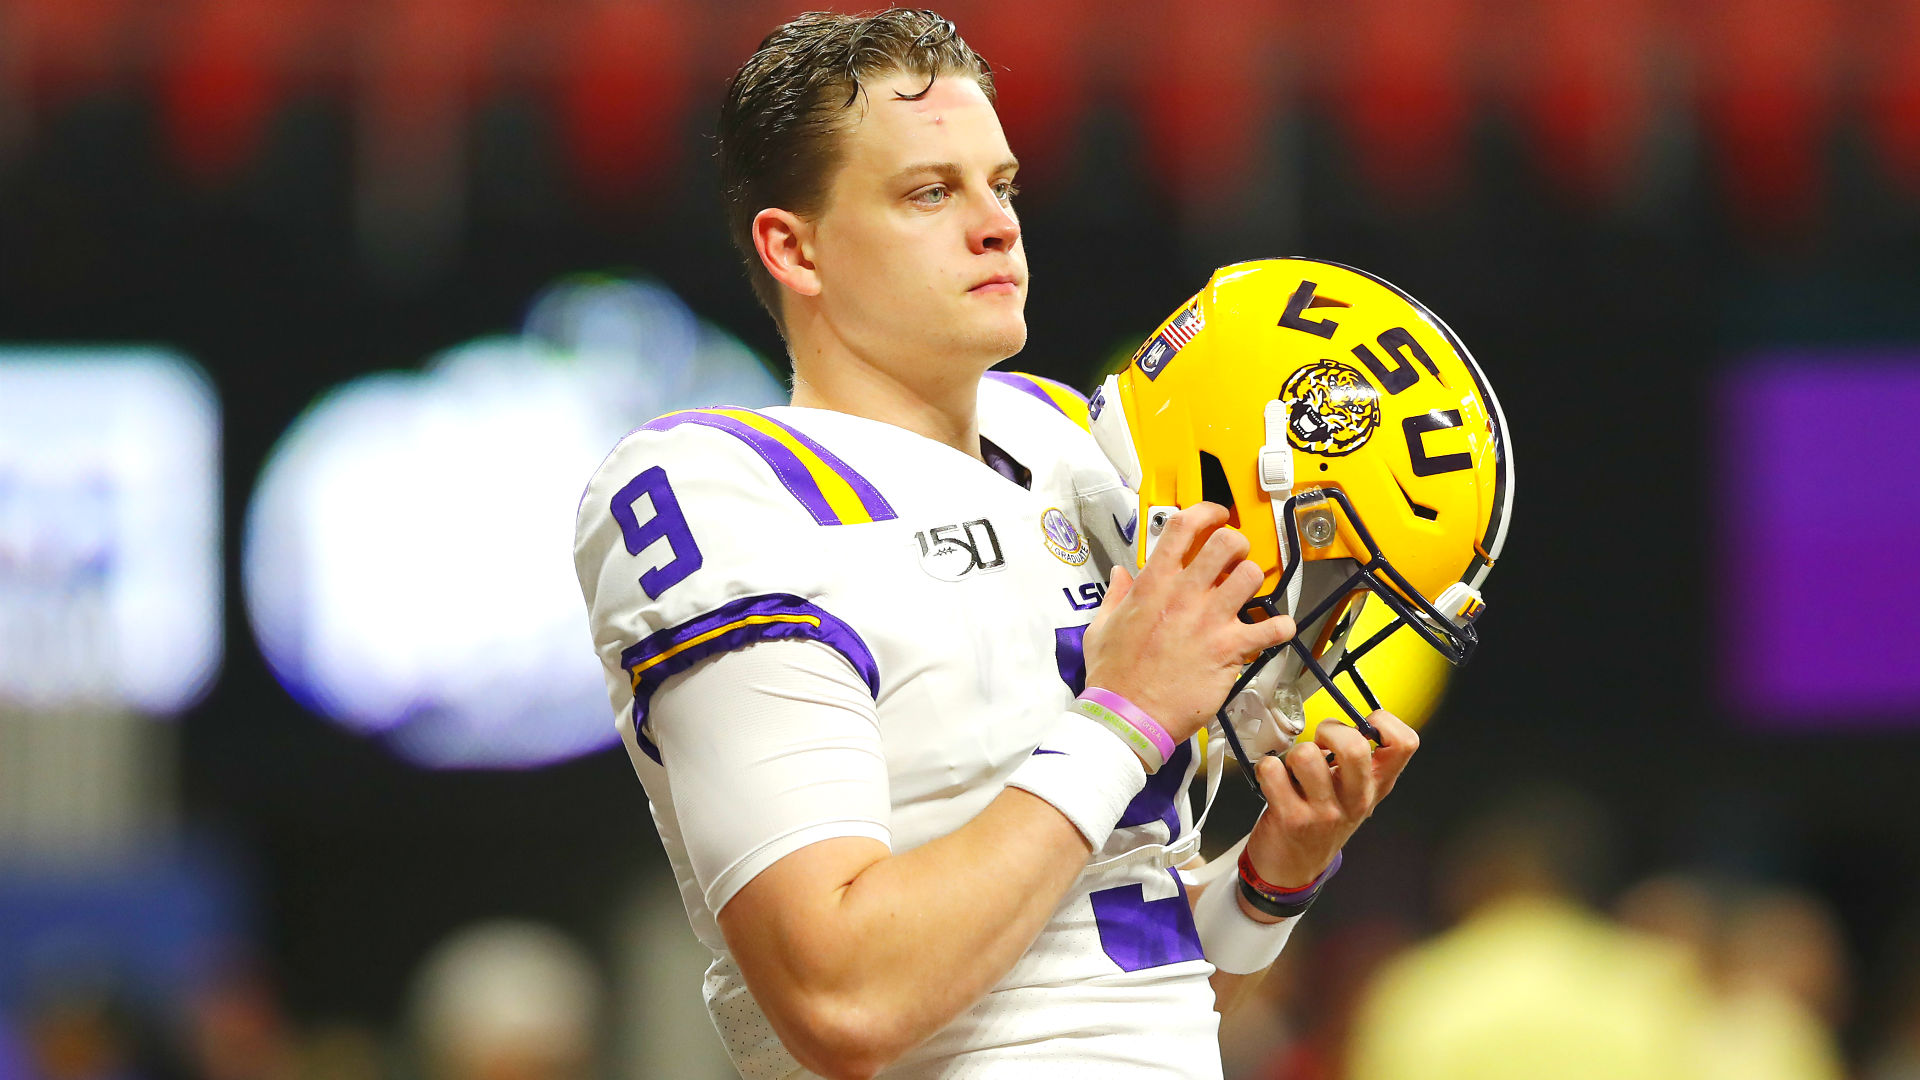 Trading for Joe Burrow: What would it take to get No. 1 pick in NFL Draft from Bengals? - sporting news